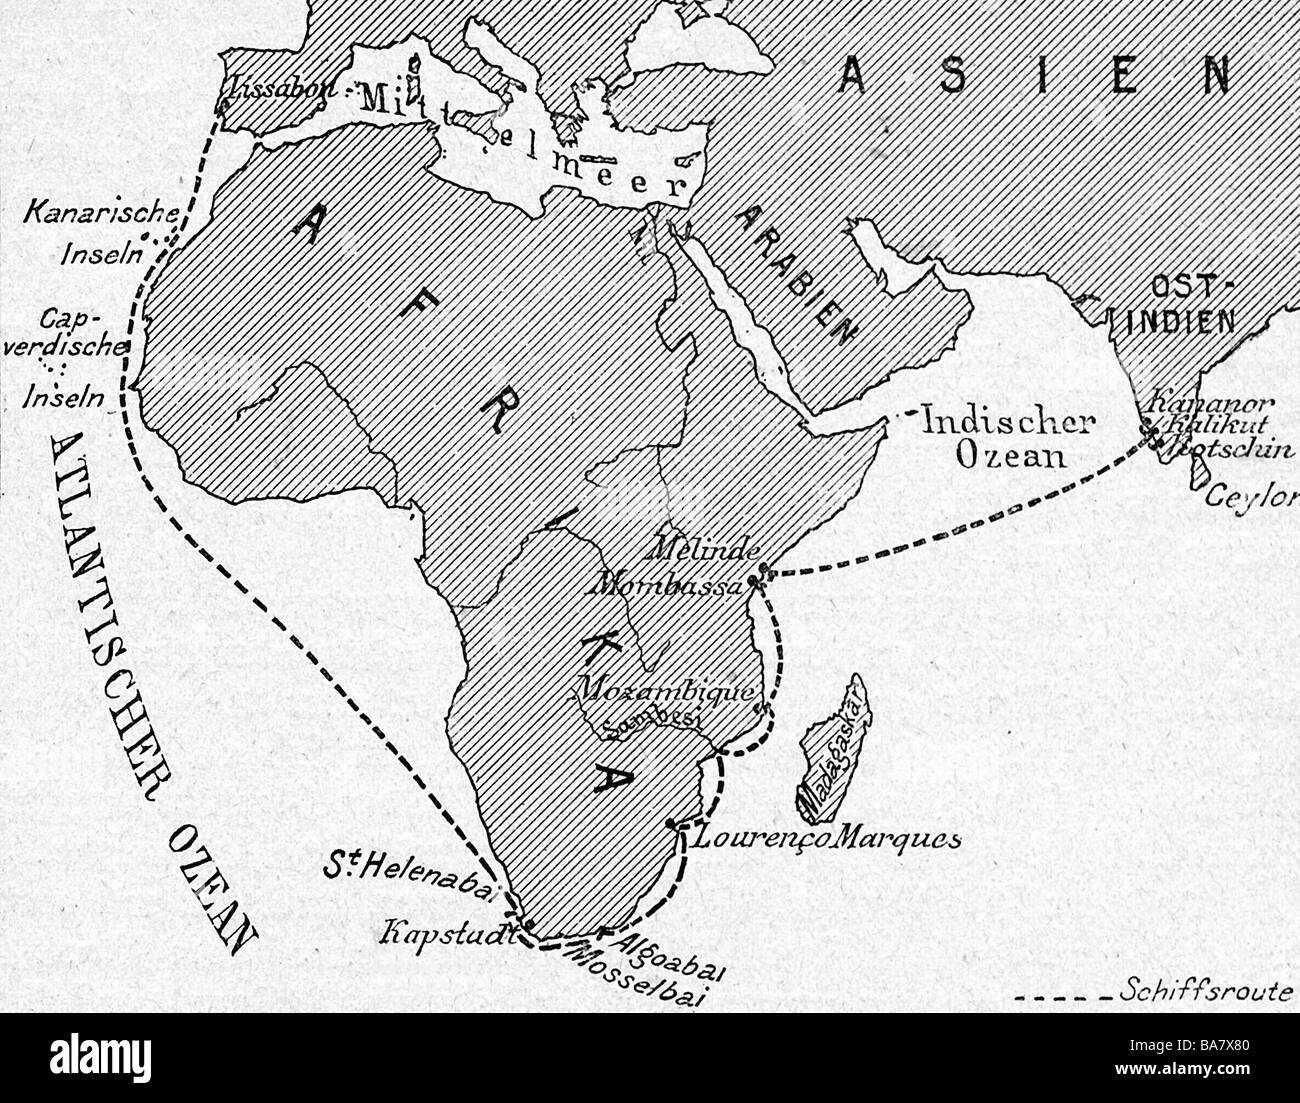 Gama, Vasco da, circa 1469 - 24.12.1524, Portugese navigator,  map with the route of his first journey to India - Stock Image